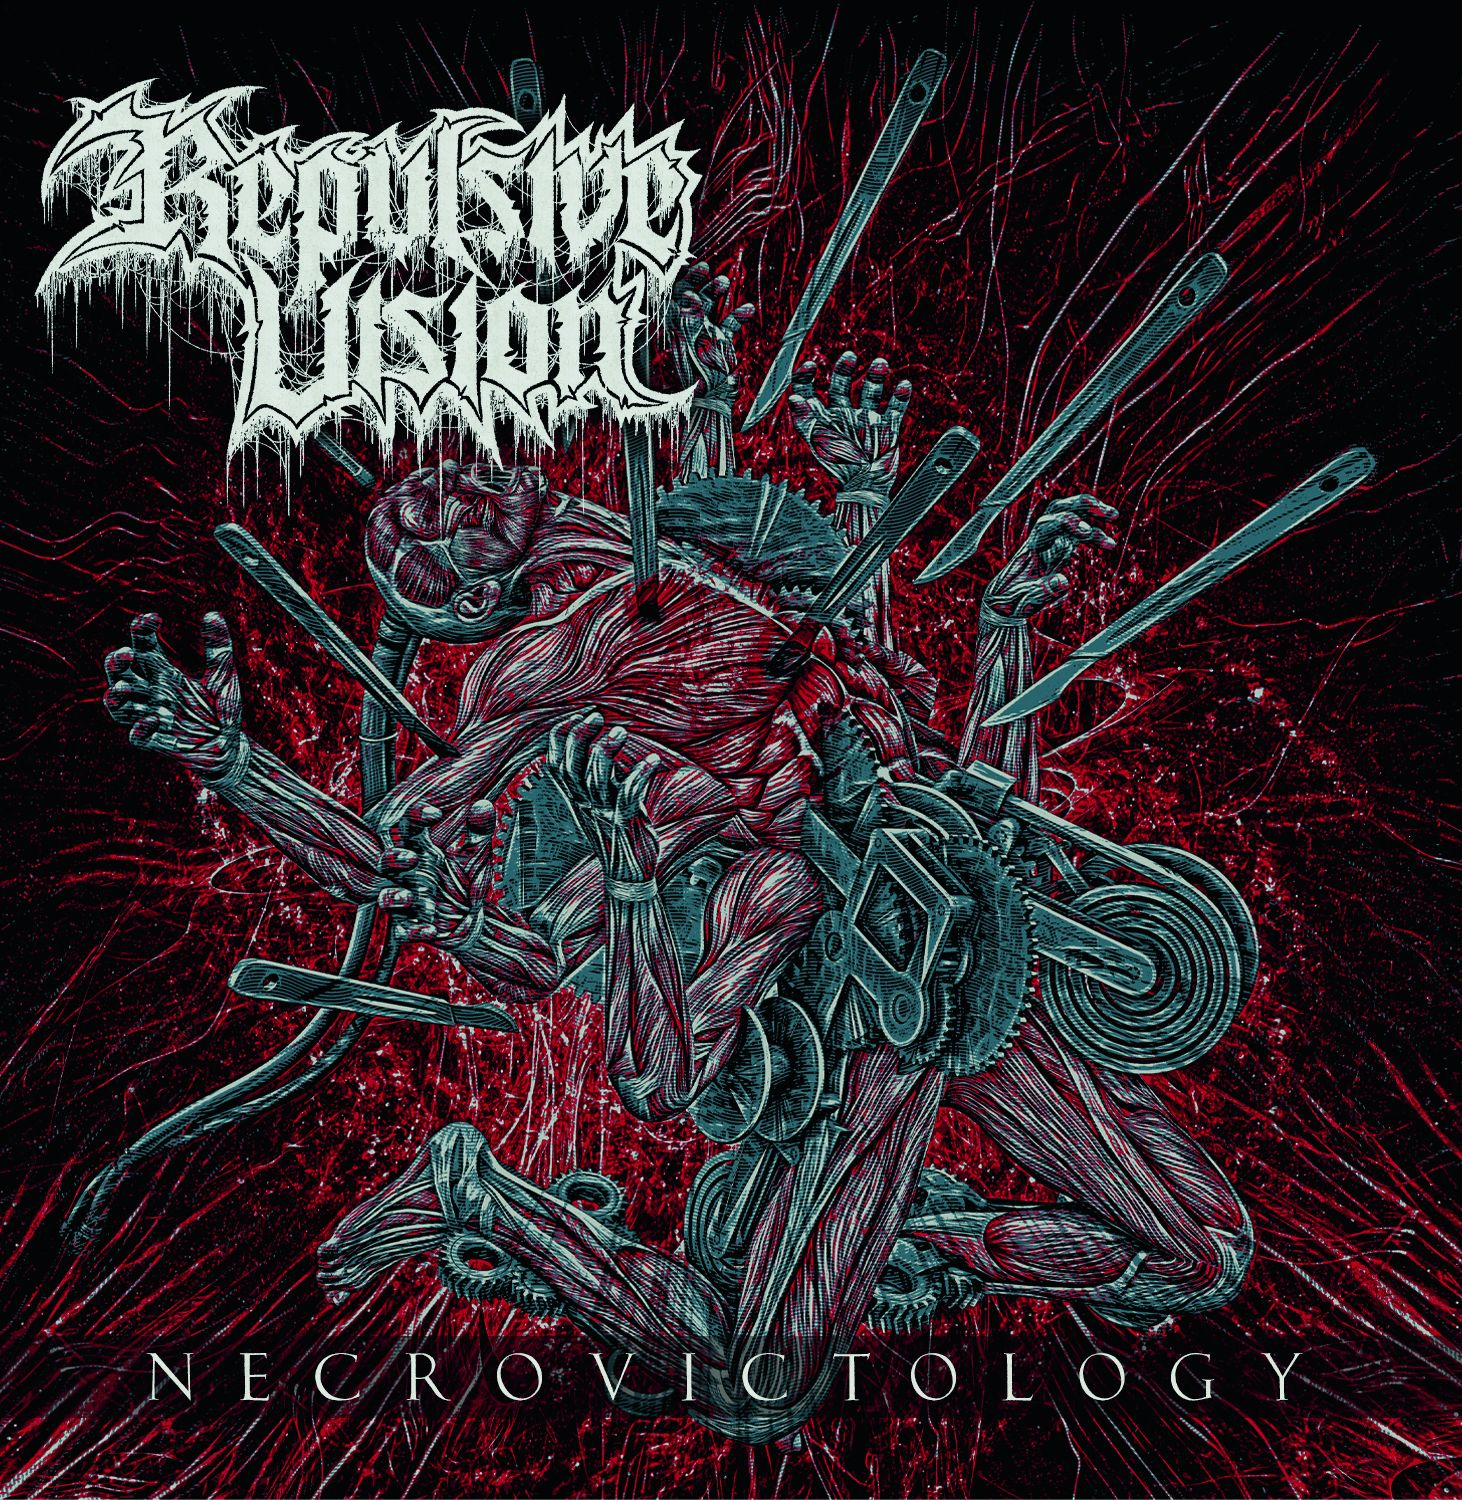 Repulsive Vision Necrovictology cover artwork